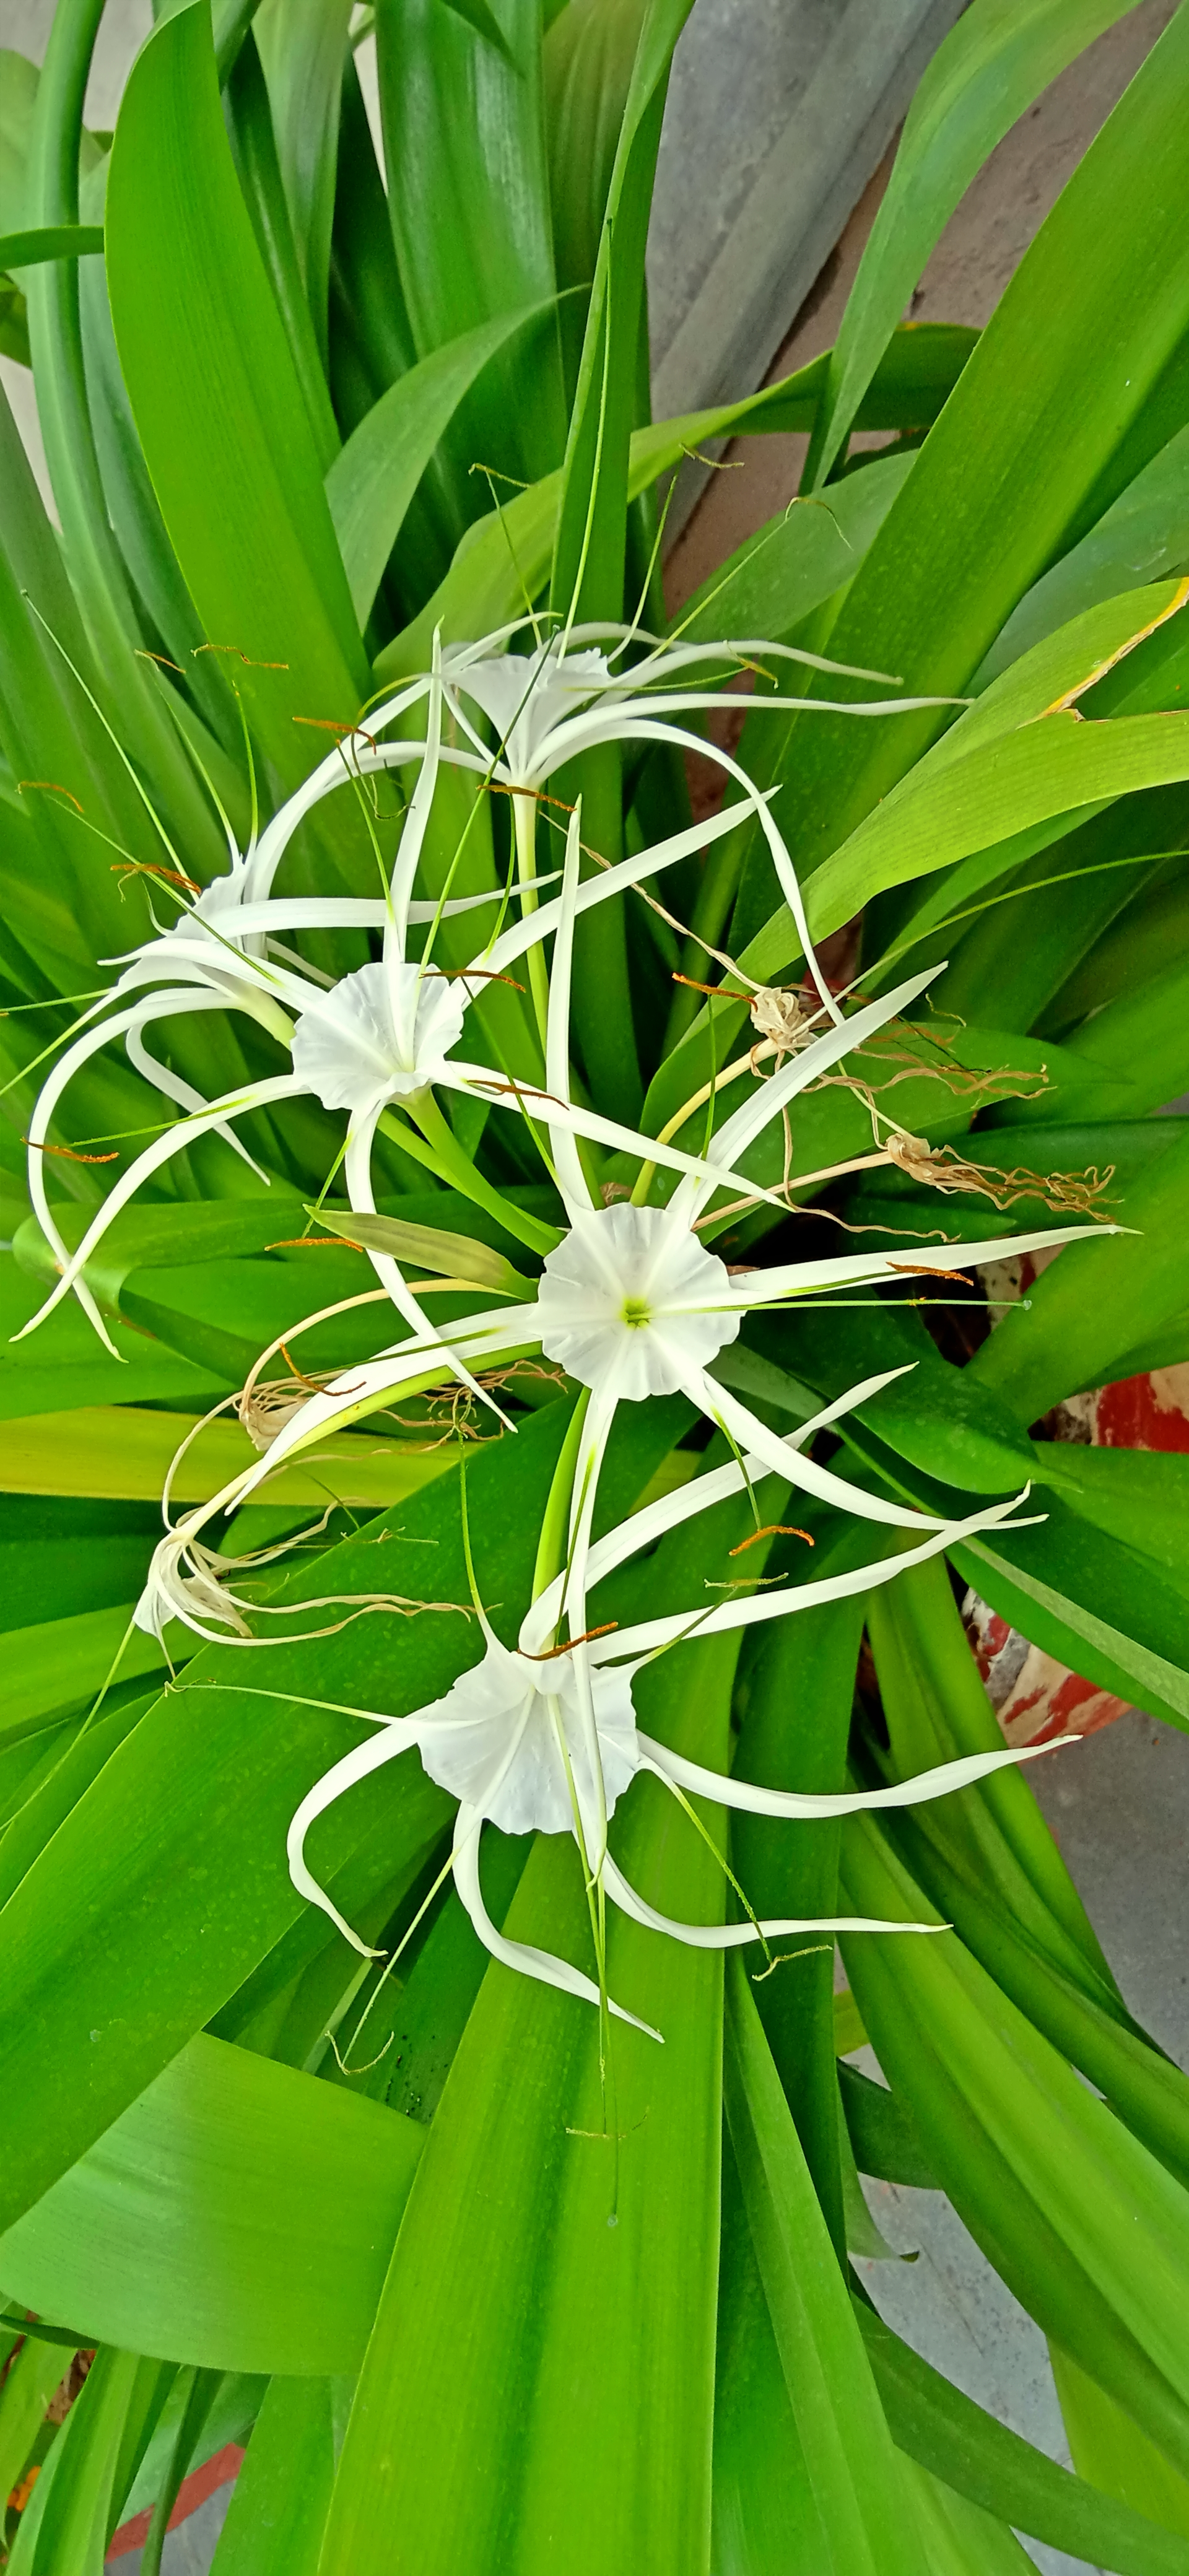 Spider Lily-White Flower image